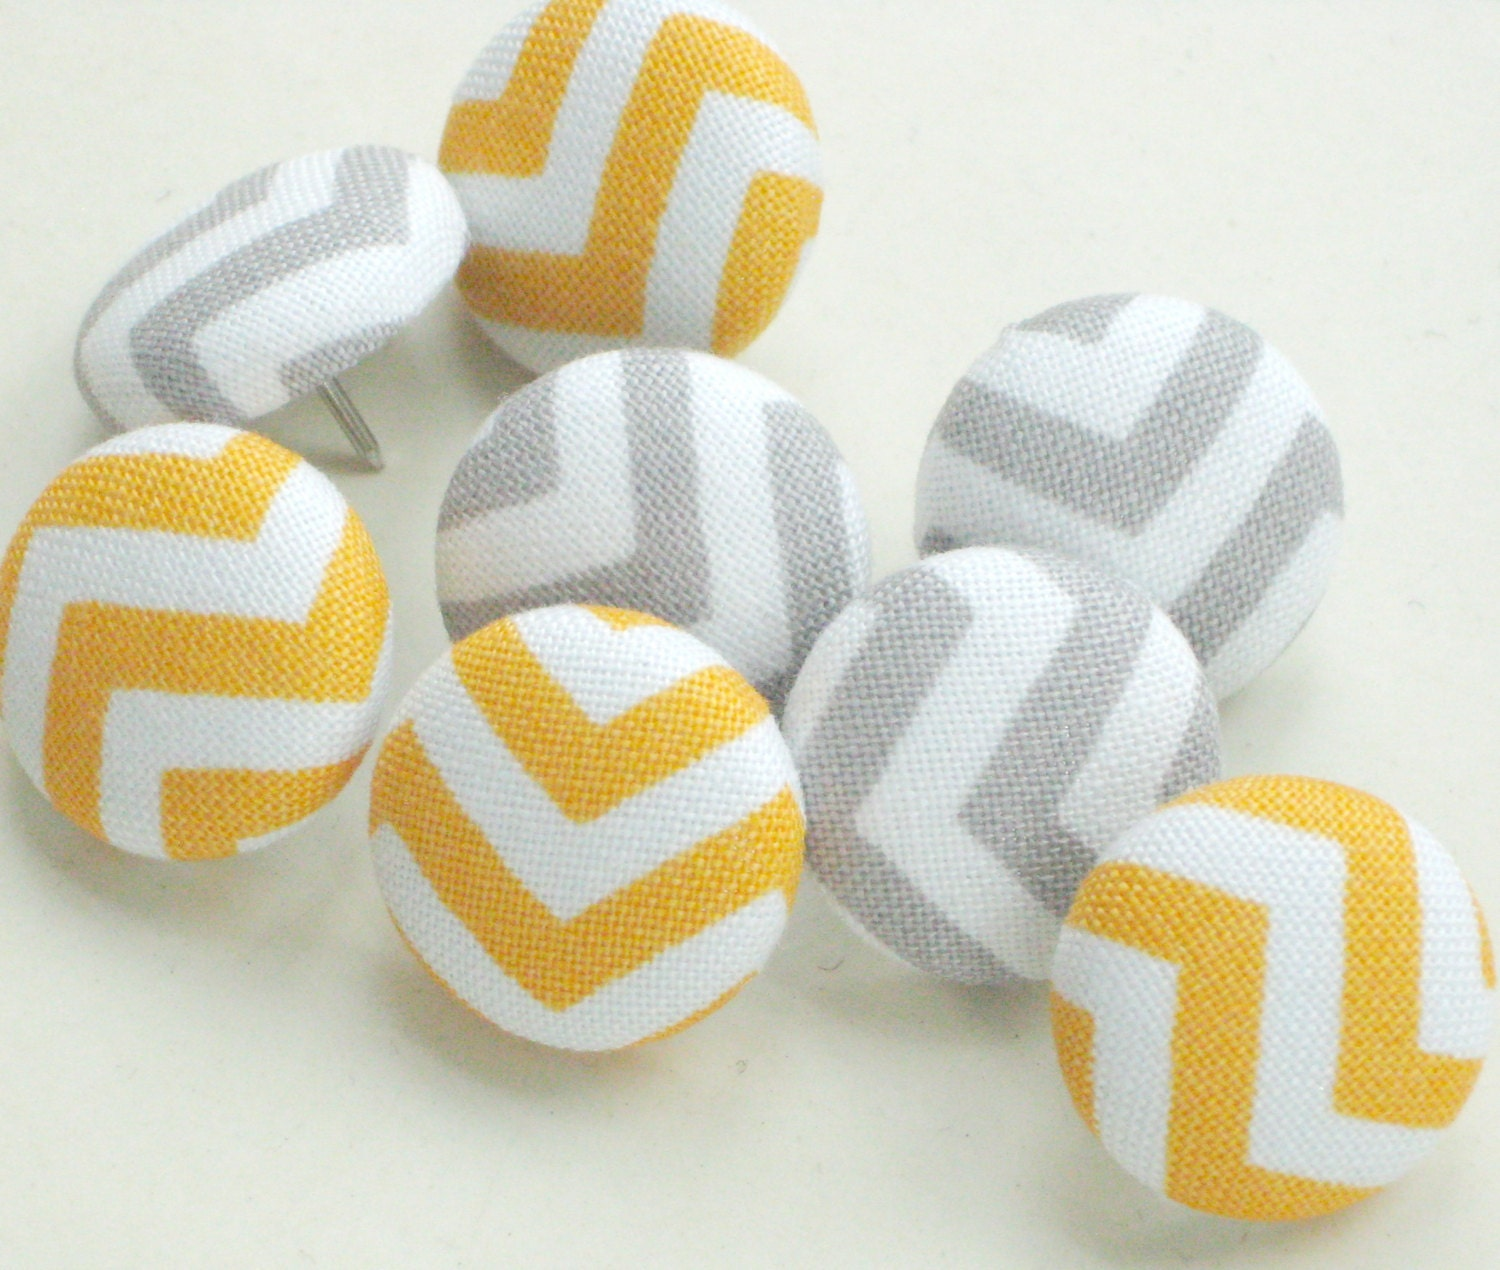 Chevron in Golden Yellow & Gray . . .Tack Pack of 8. Fabric Push Pins. Pushpins - PaperPumpkin